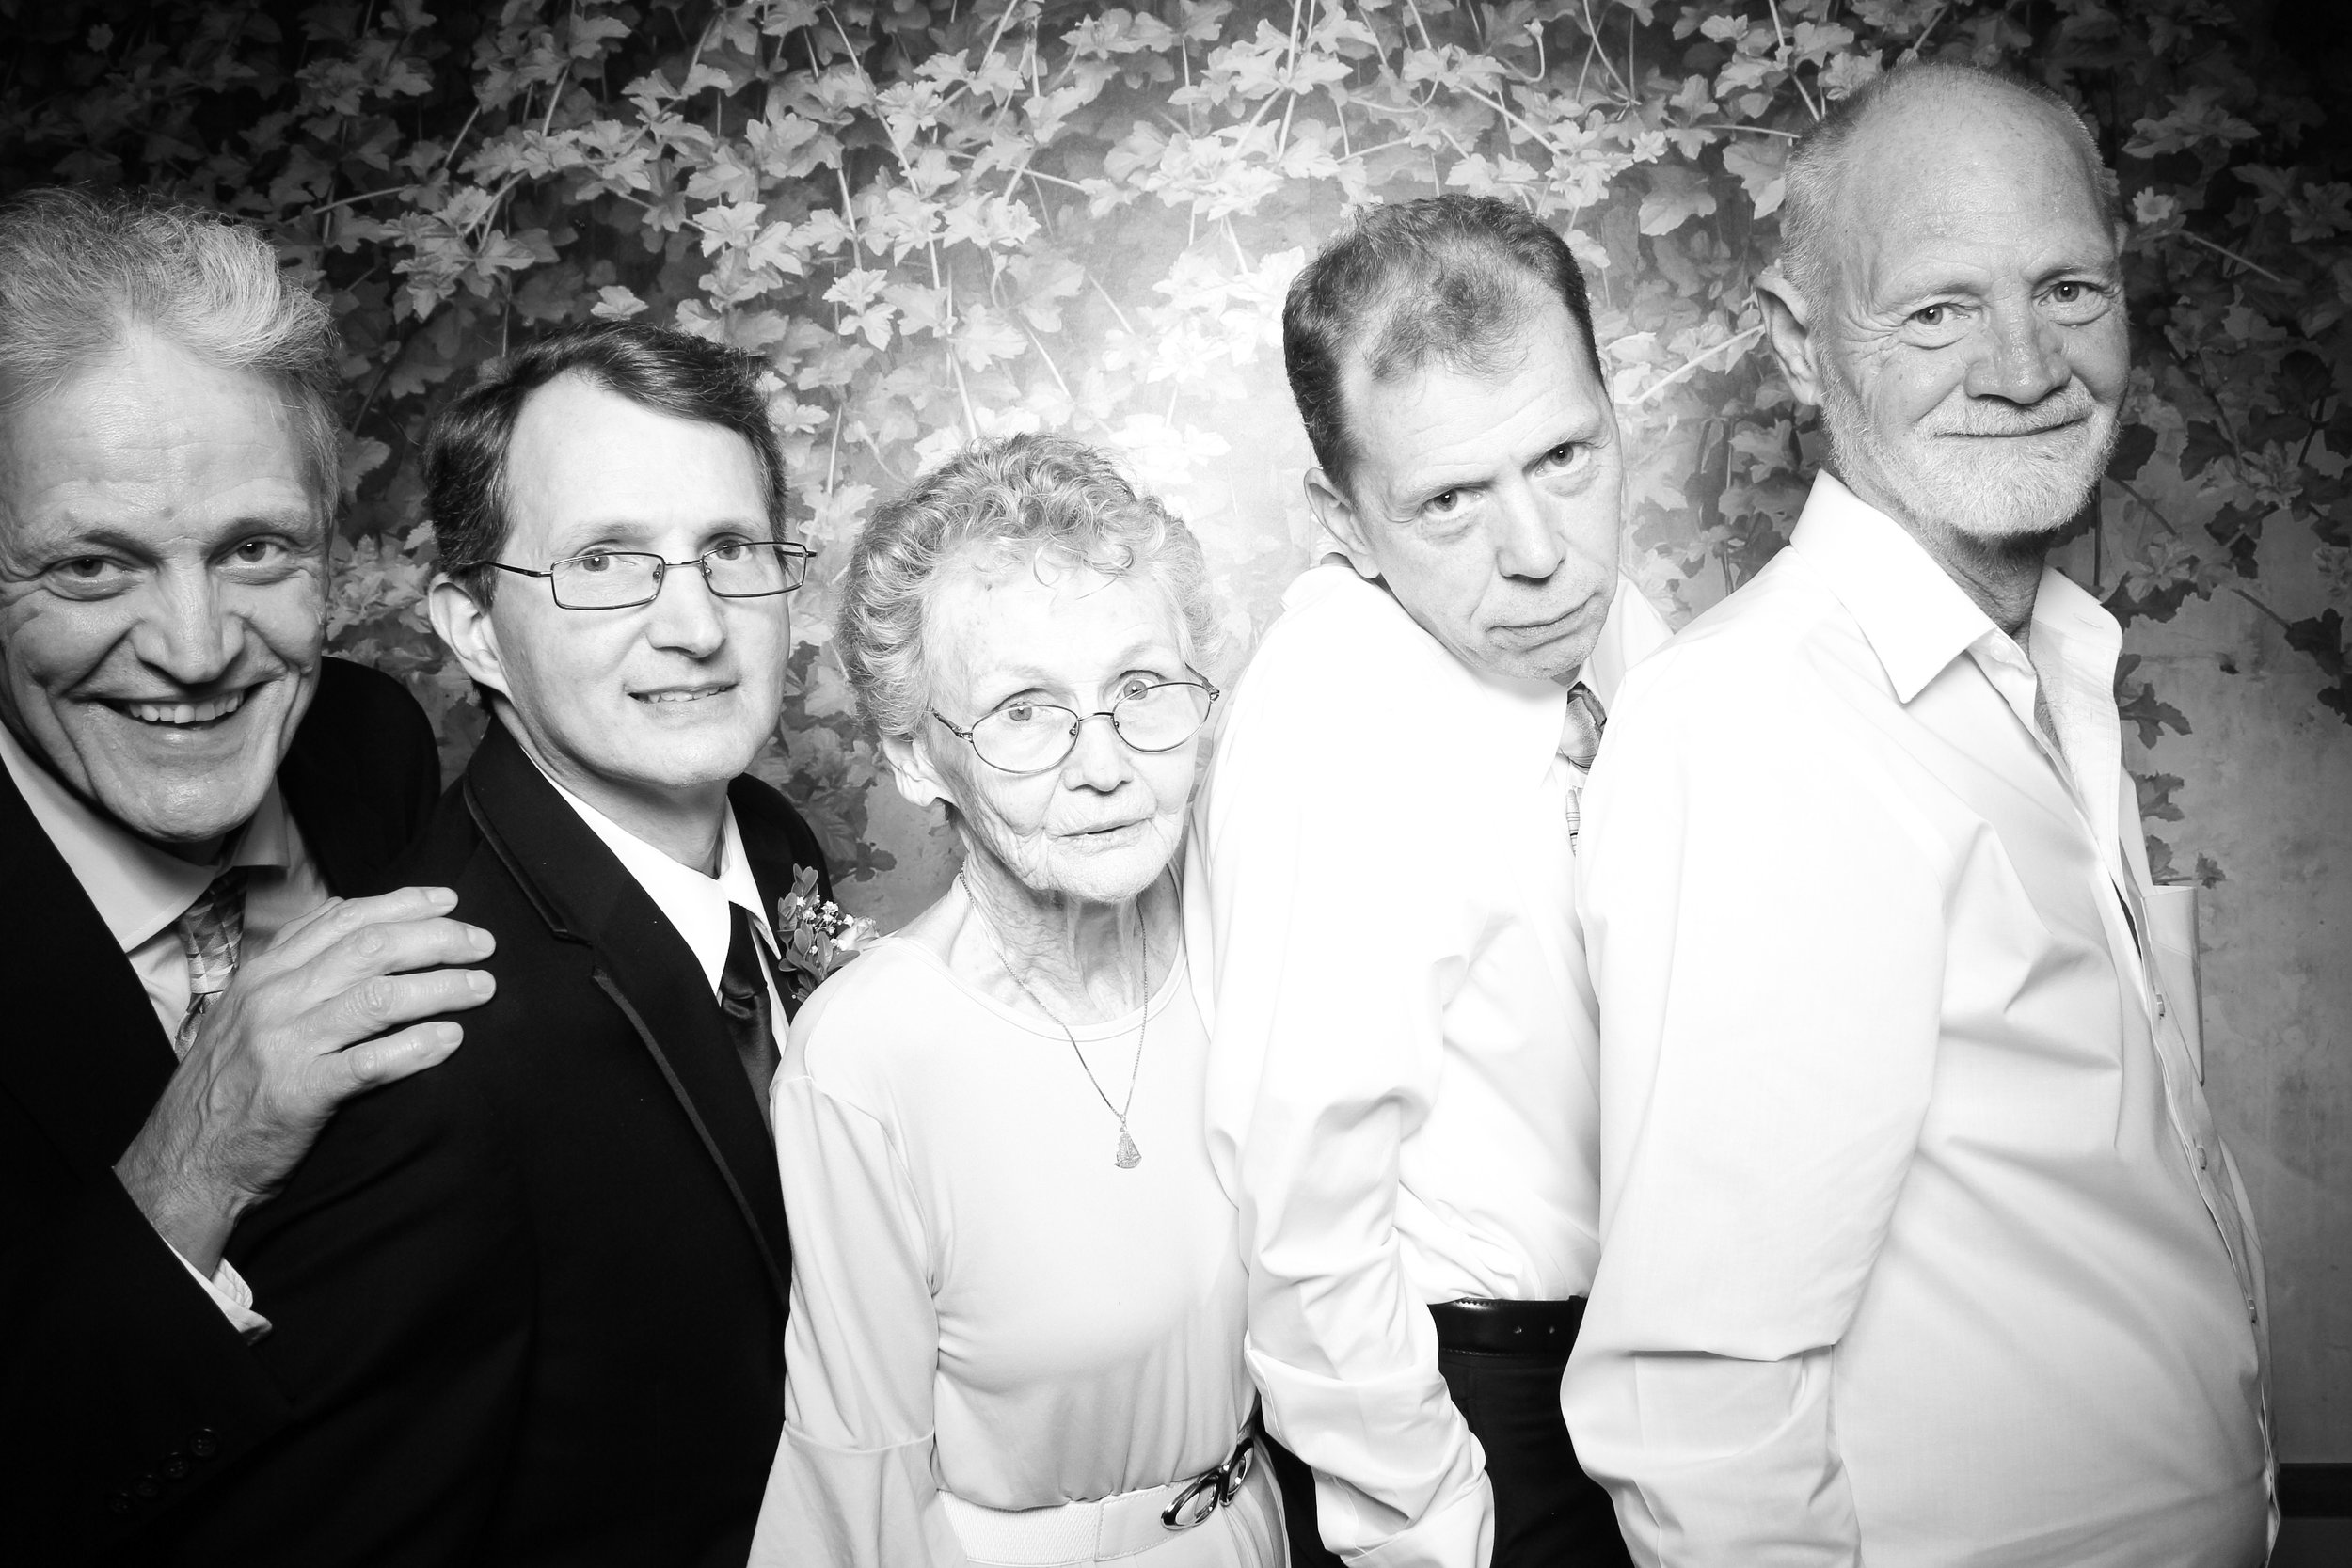 Randall_Oaks_Country_Club_Wedding_West_Dundee_Photo_Booth_25.jpg